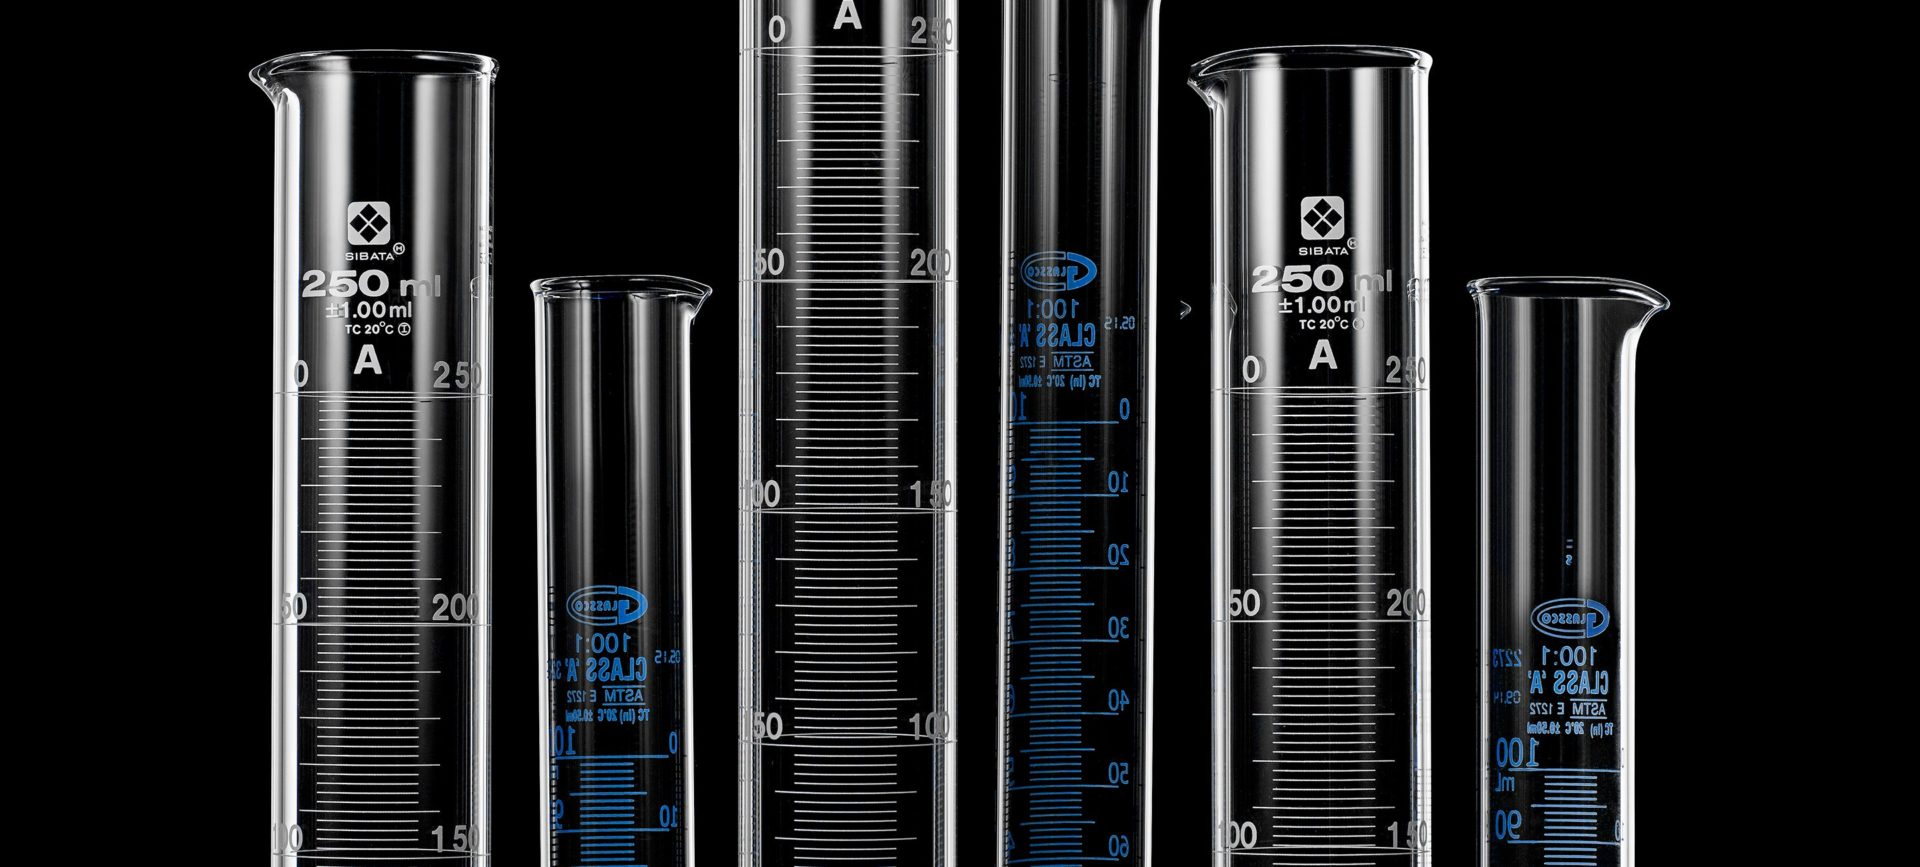 Six graduated cylinders of various sizes on a black background.